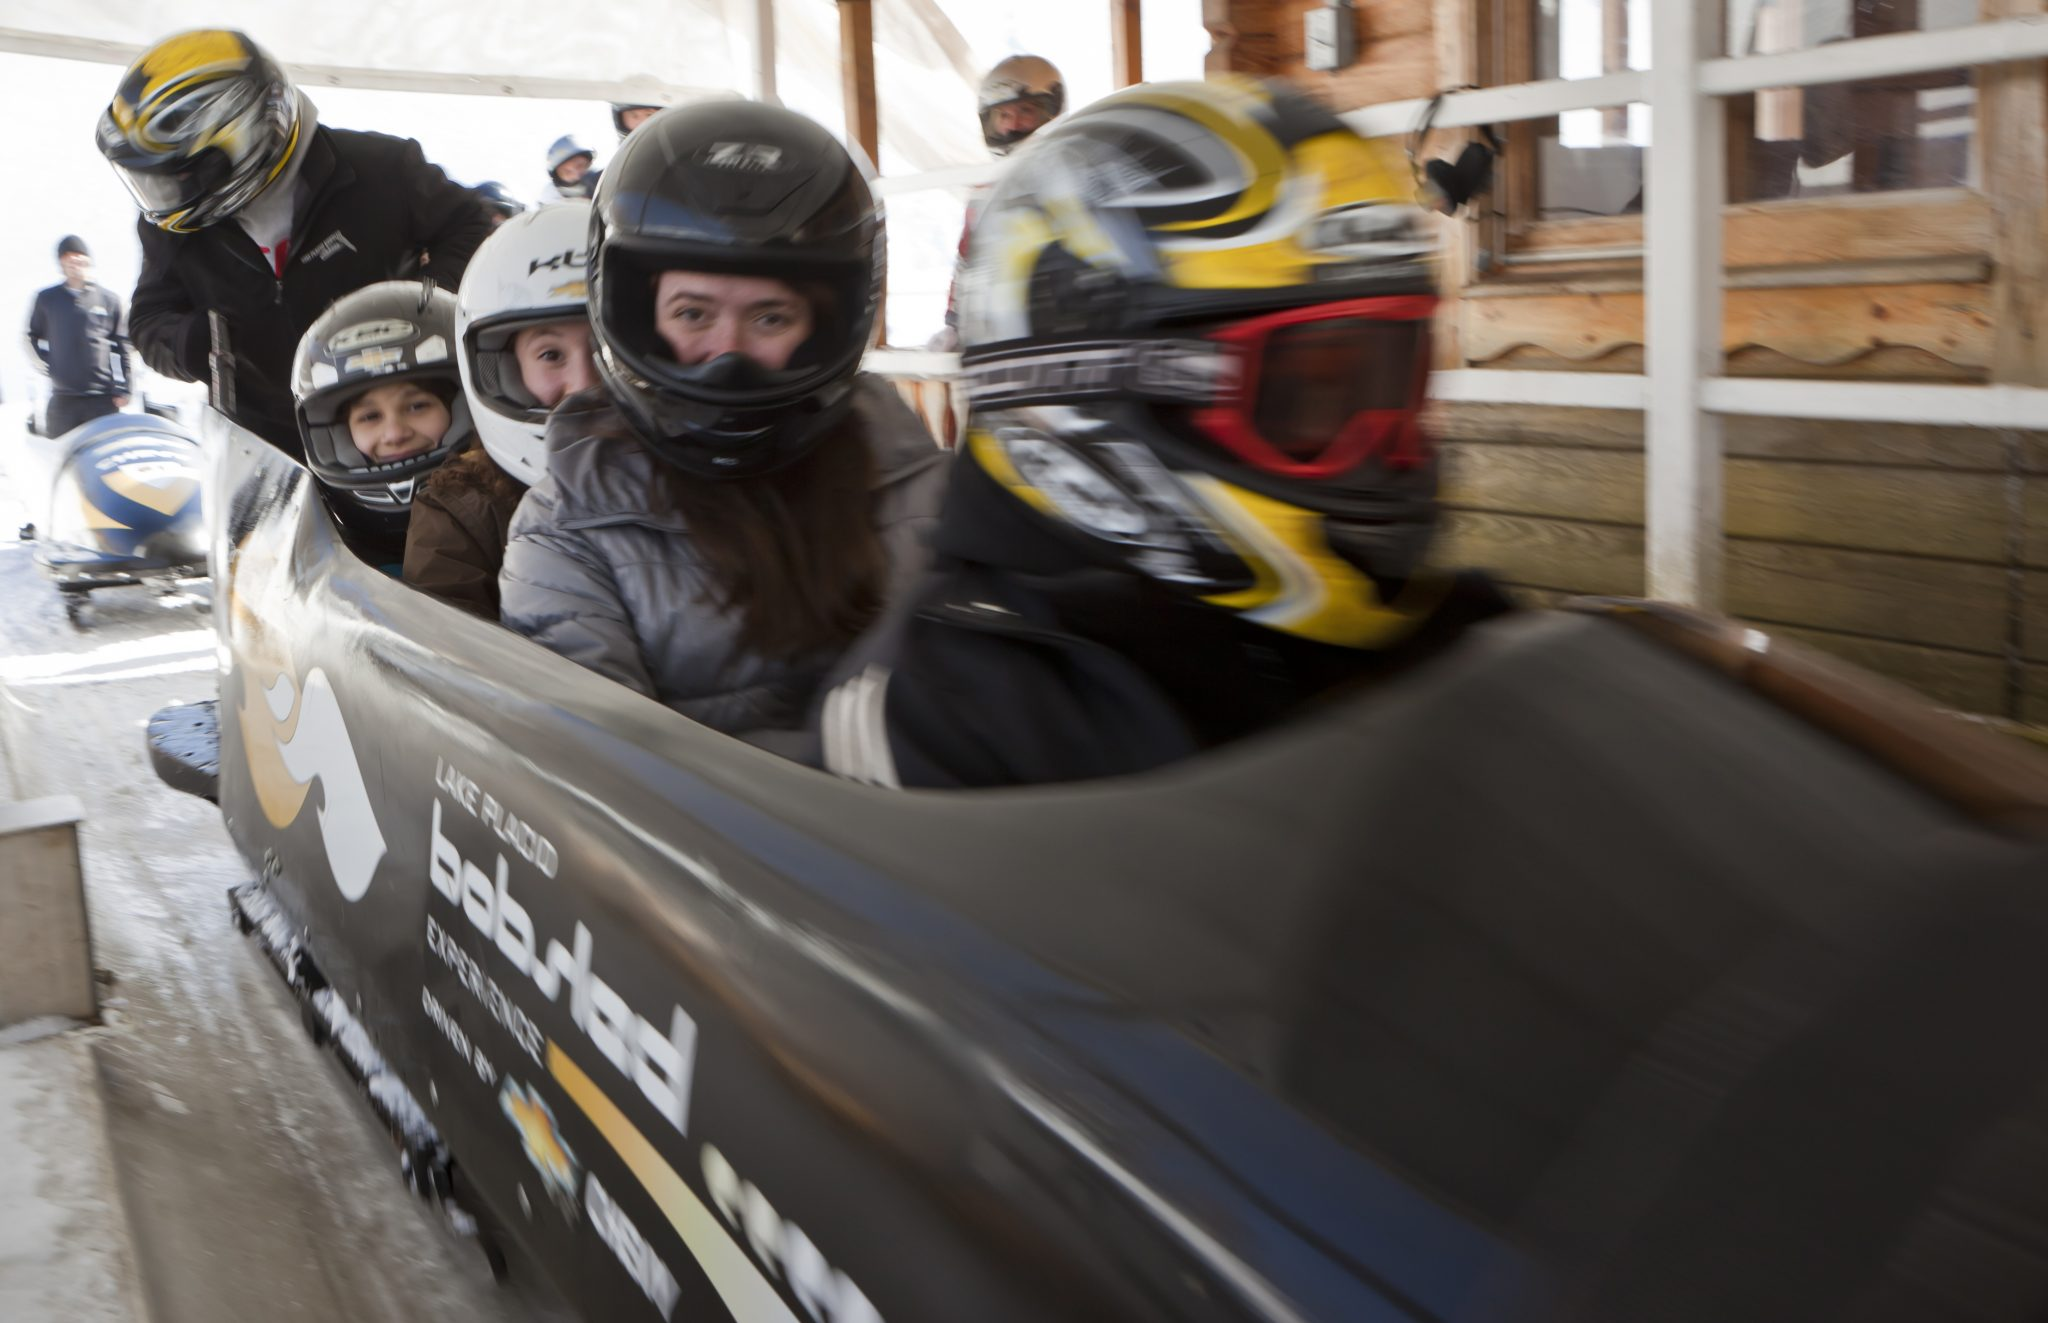 Four children in a bobsled.